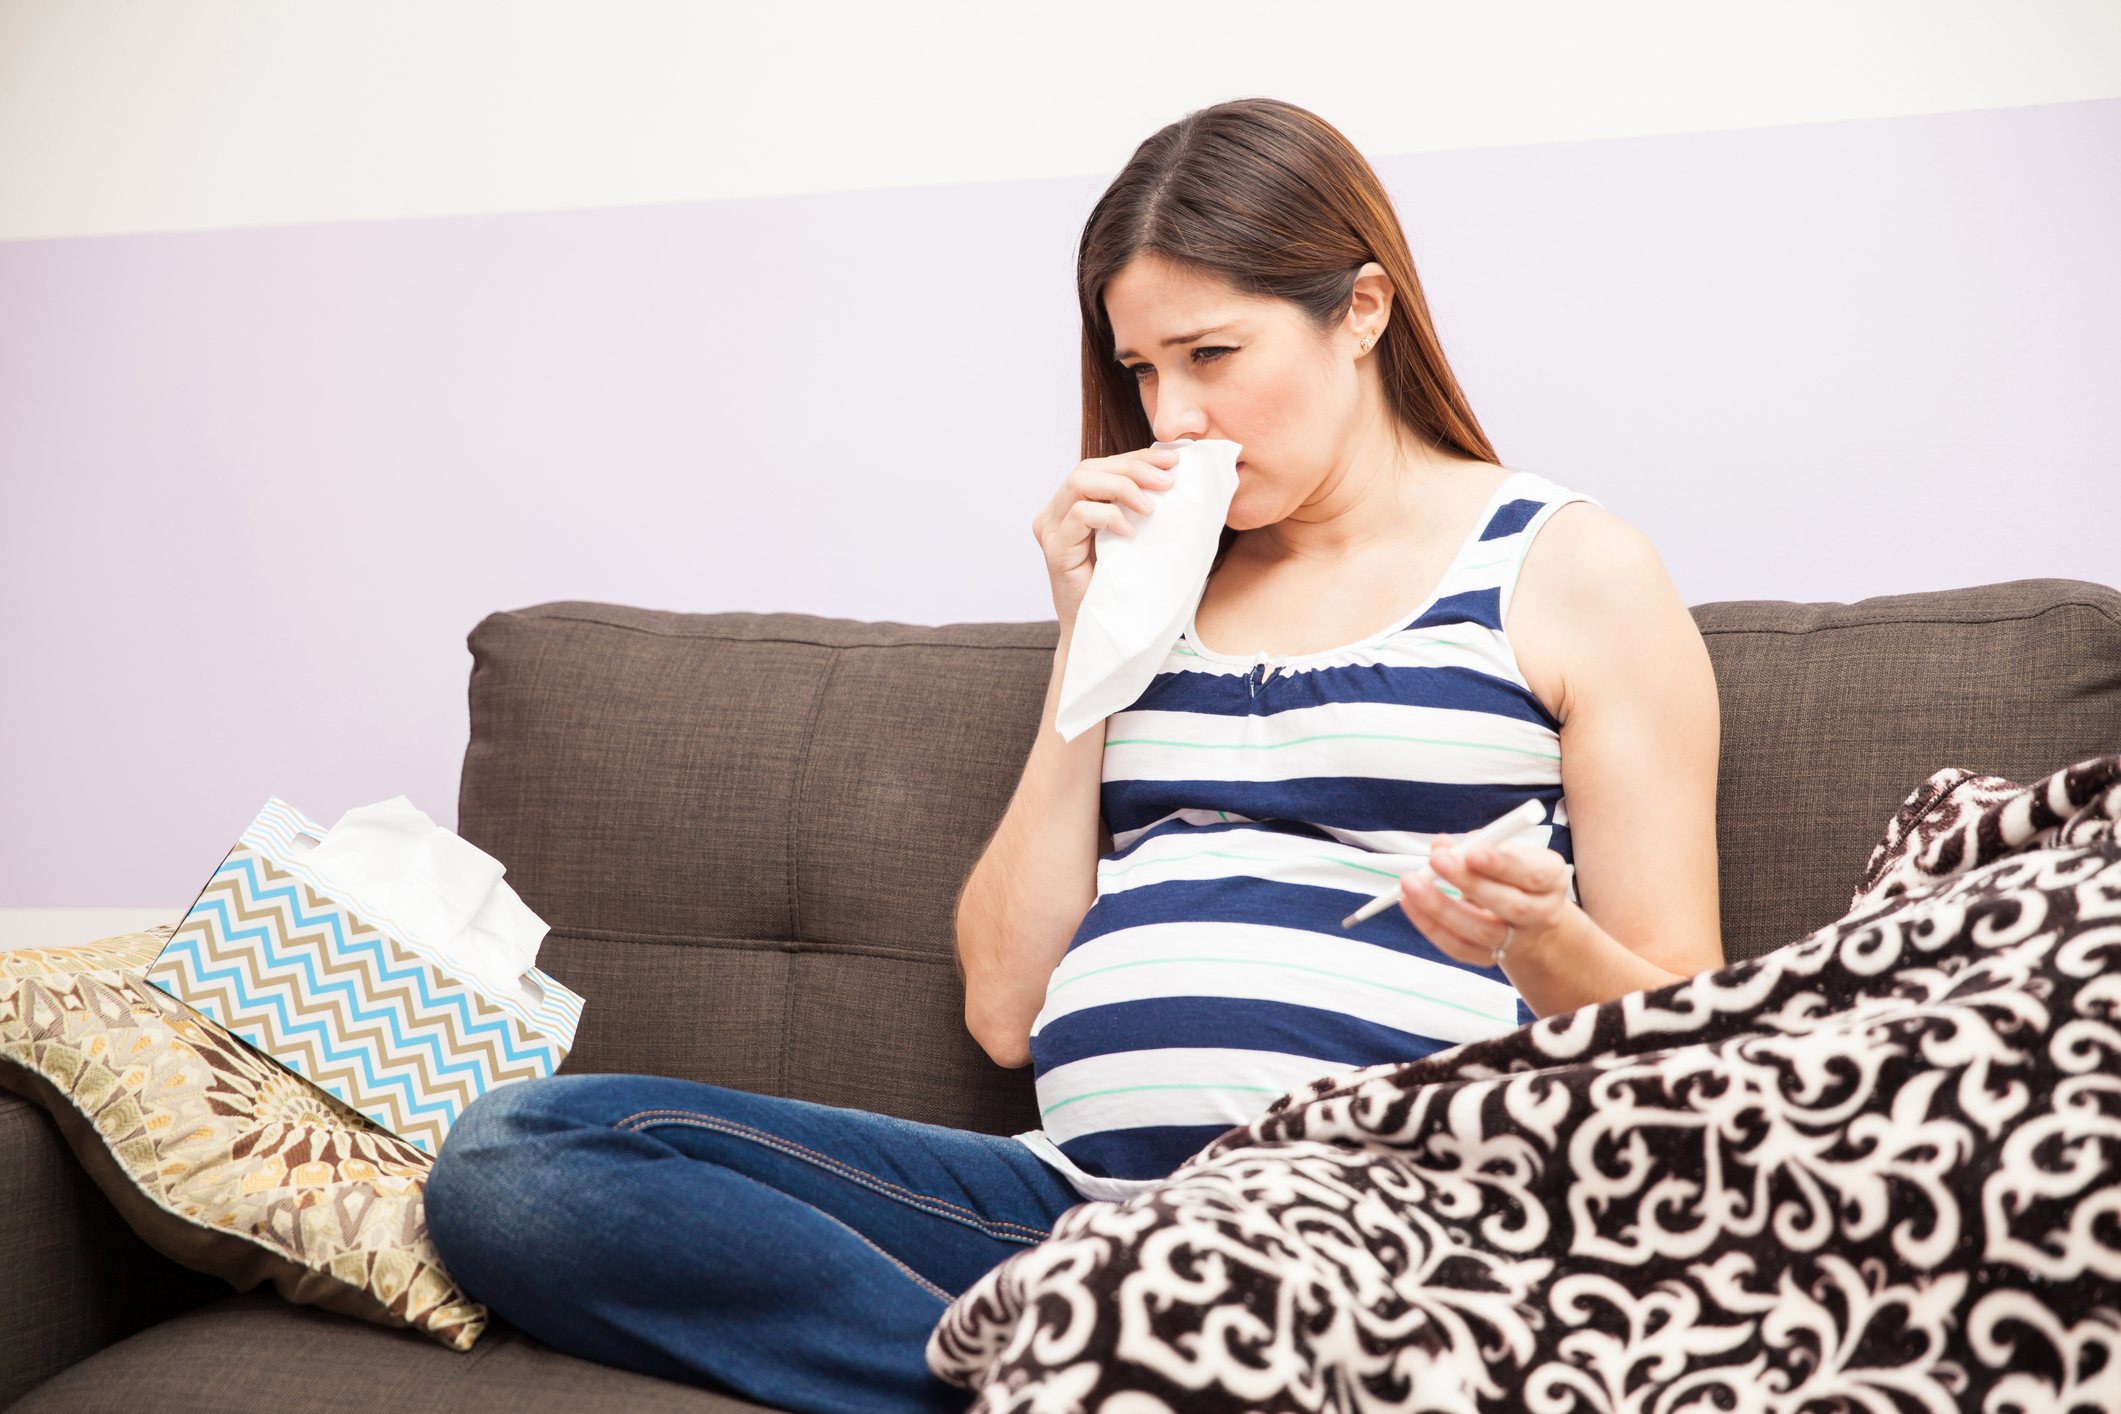 Pregnant women can be treated with flu medications